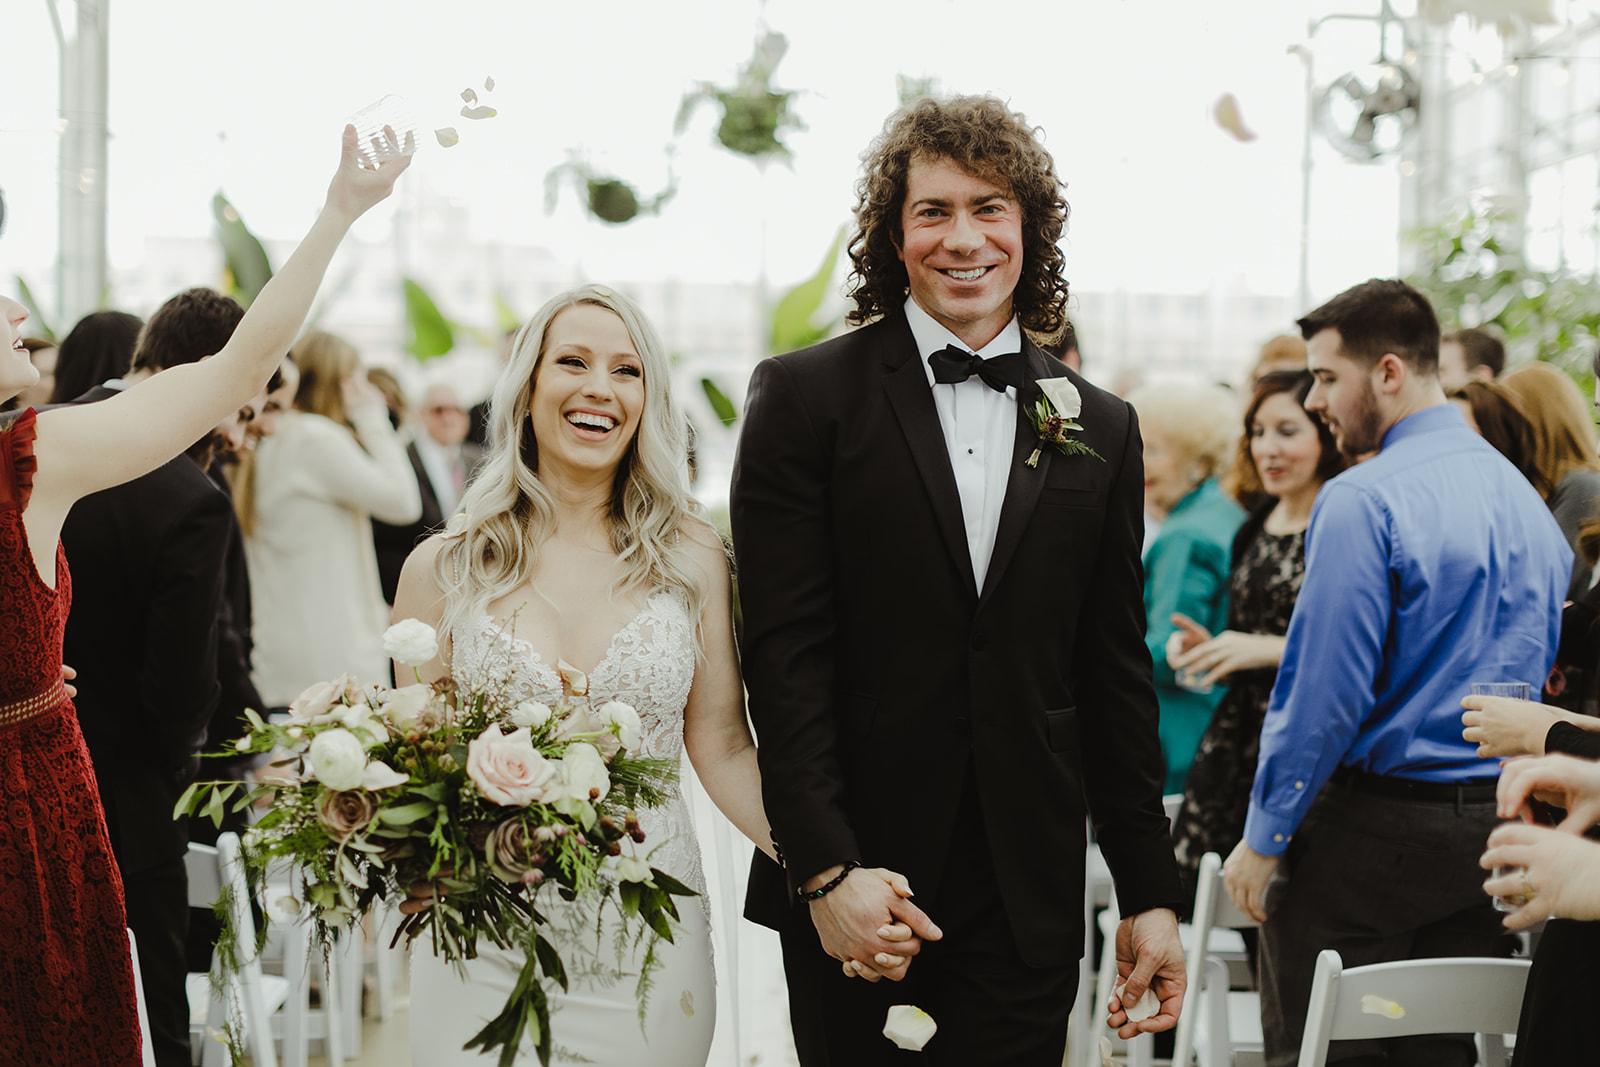 A couple smiling after their wedding ceremony